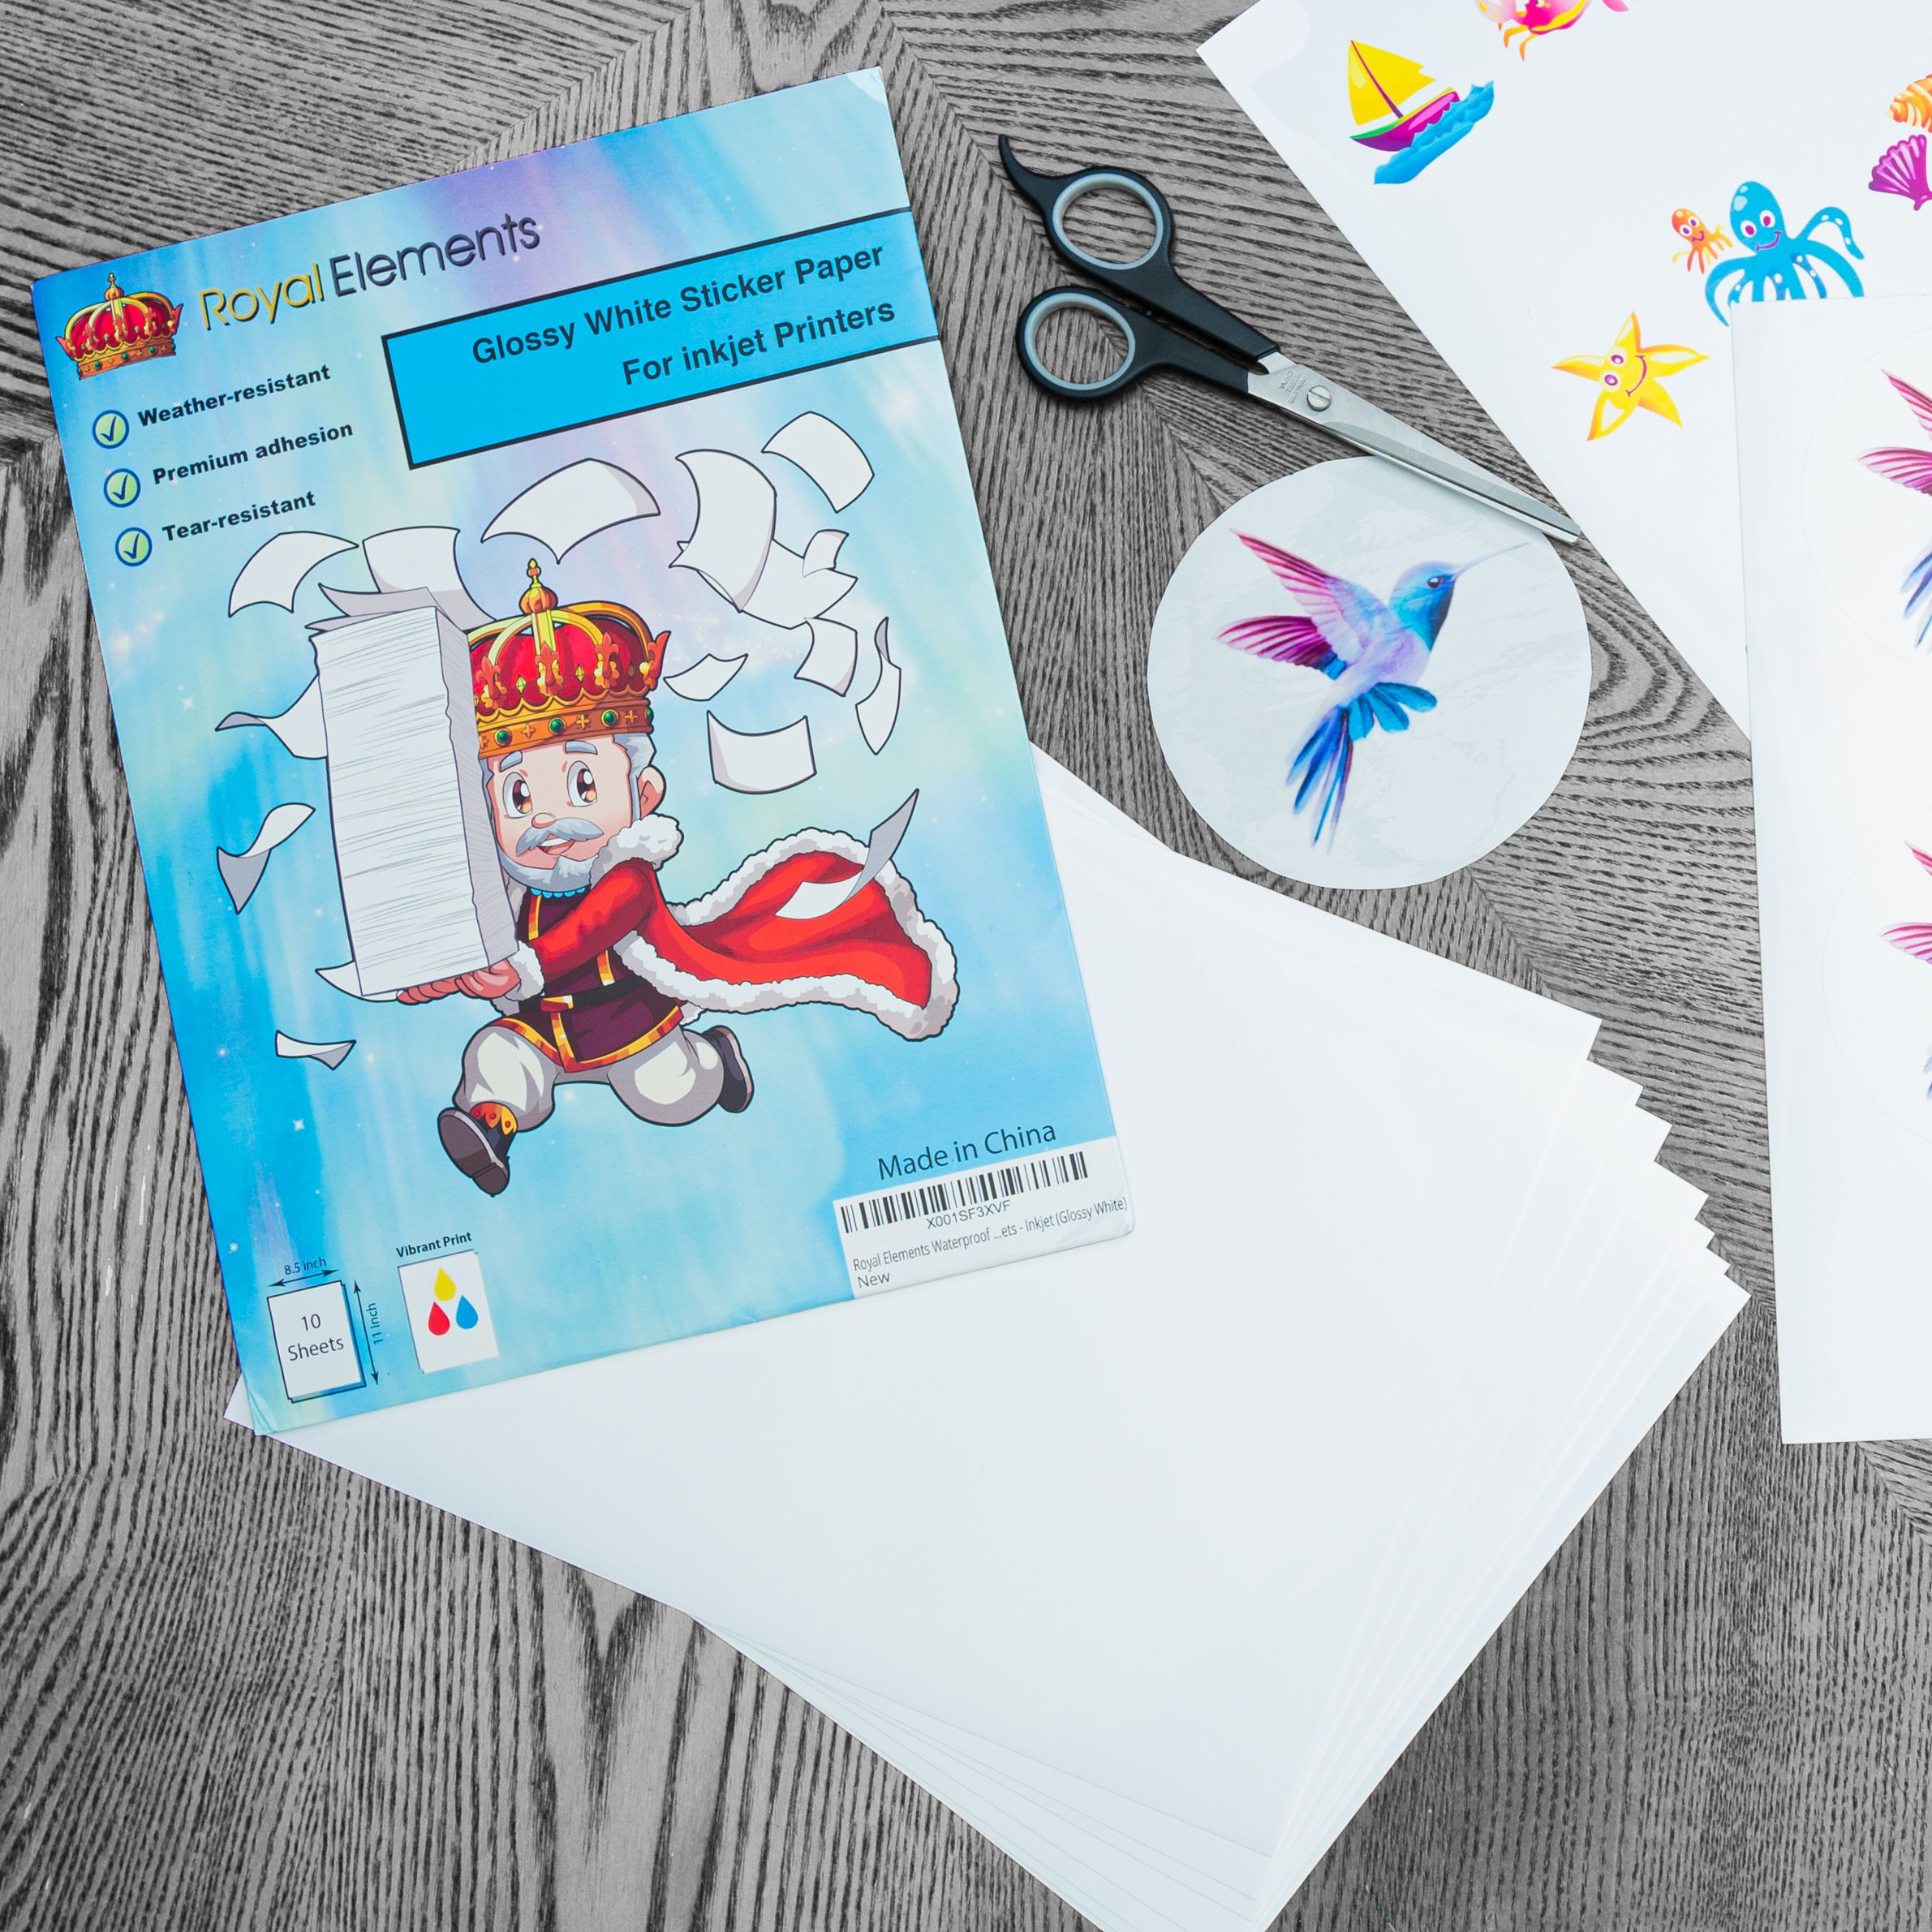 Crafting Is So Much Fun Especially With Royal Elements Visit Our Store Today For Aw In 2020 Vinyl Sticker Paper Waterslide Decal Paper Printable Sticker Paper